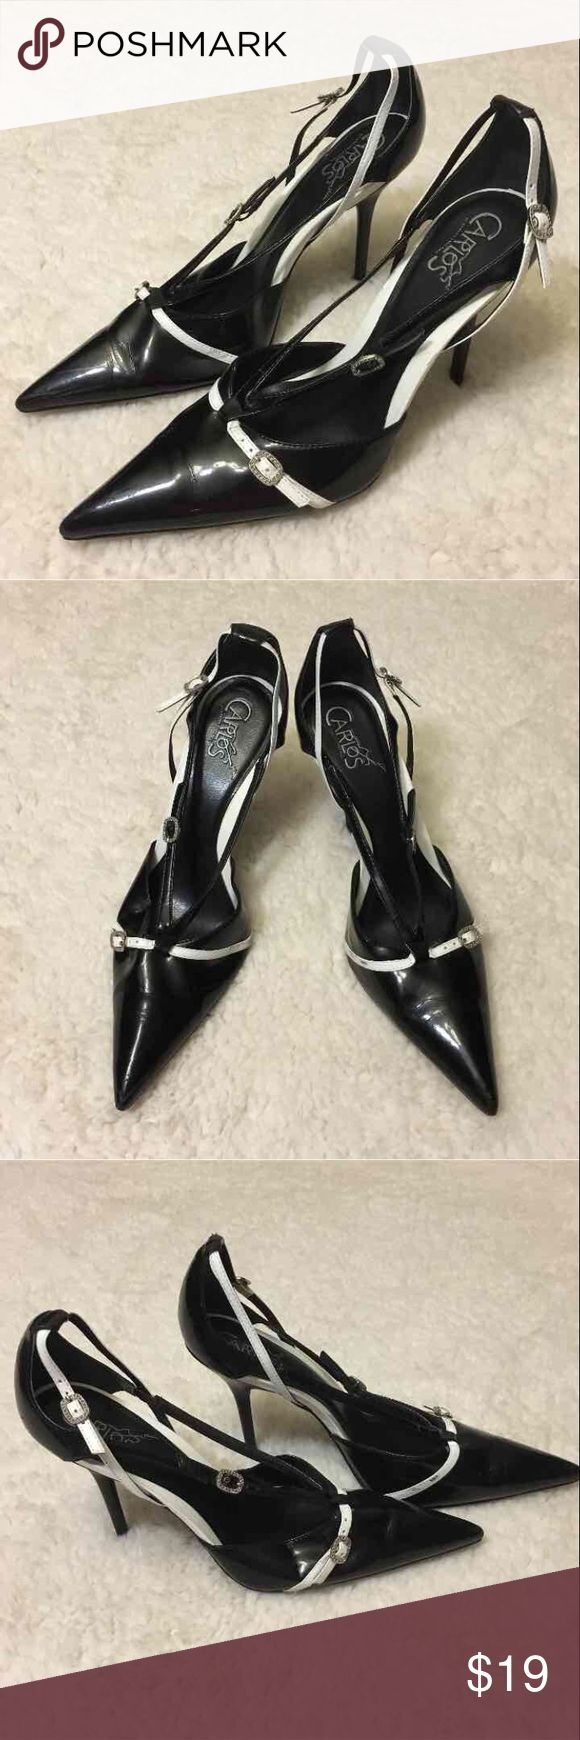 Carlos Santana Expose Black and White Pumps Size 9 women's. Black and White Strappy Design with Buckle. Expose style by Carlos Santana. Some creases in the front due to wear, but overall great condition 😊 Carlos Santana Shoes Heels